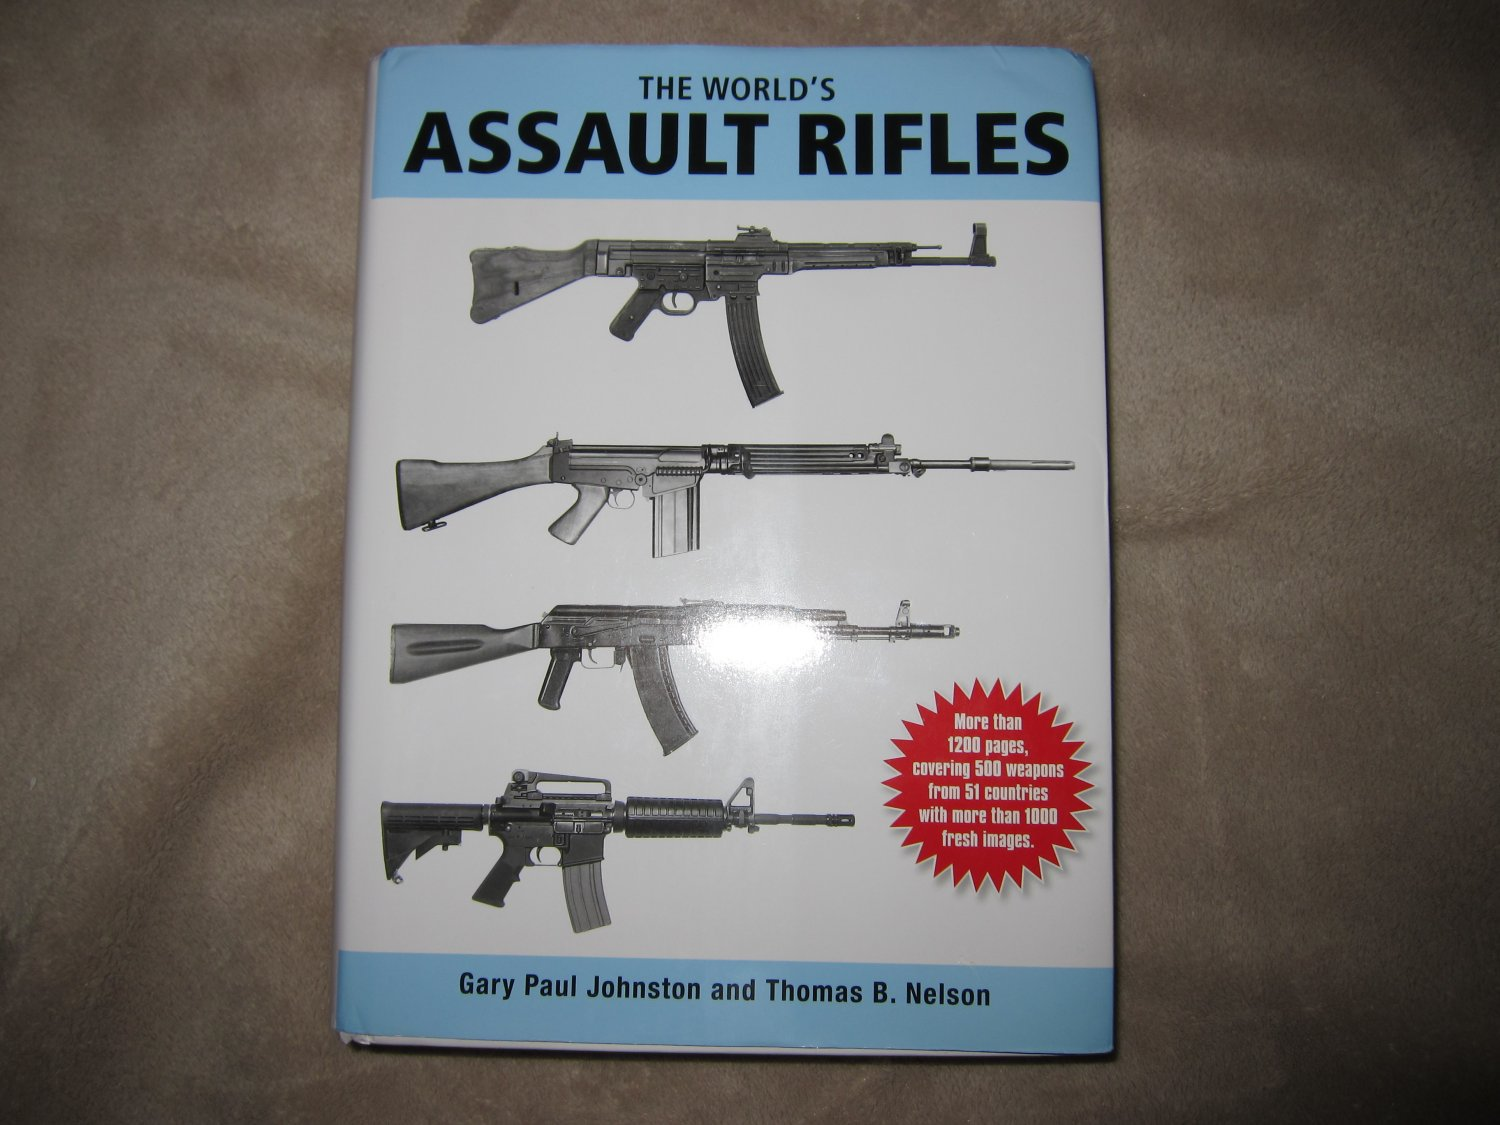 "<!--:en-->""The World's Assault Rifles"": Best and Most Complete Book on Military Infantry Assault Rifles (and Battle Rifles) Ever Written?  DefenseReview (DR) Highly Recommends It!<!--:-->"